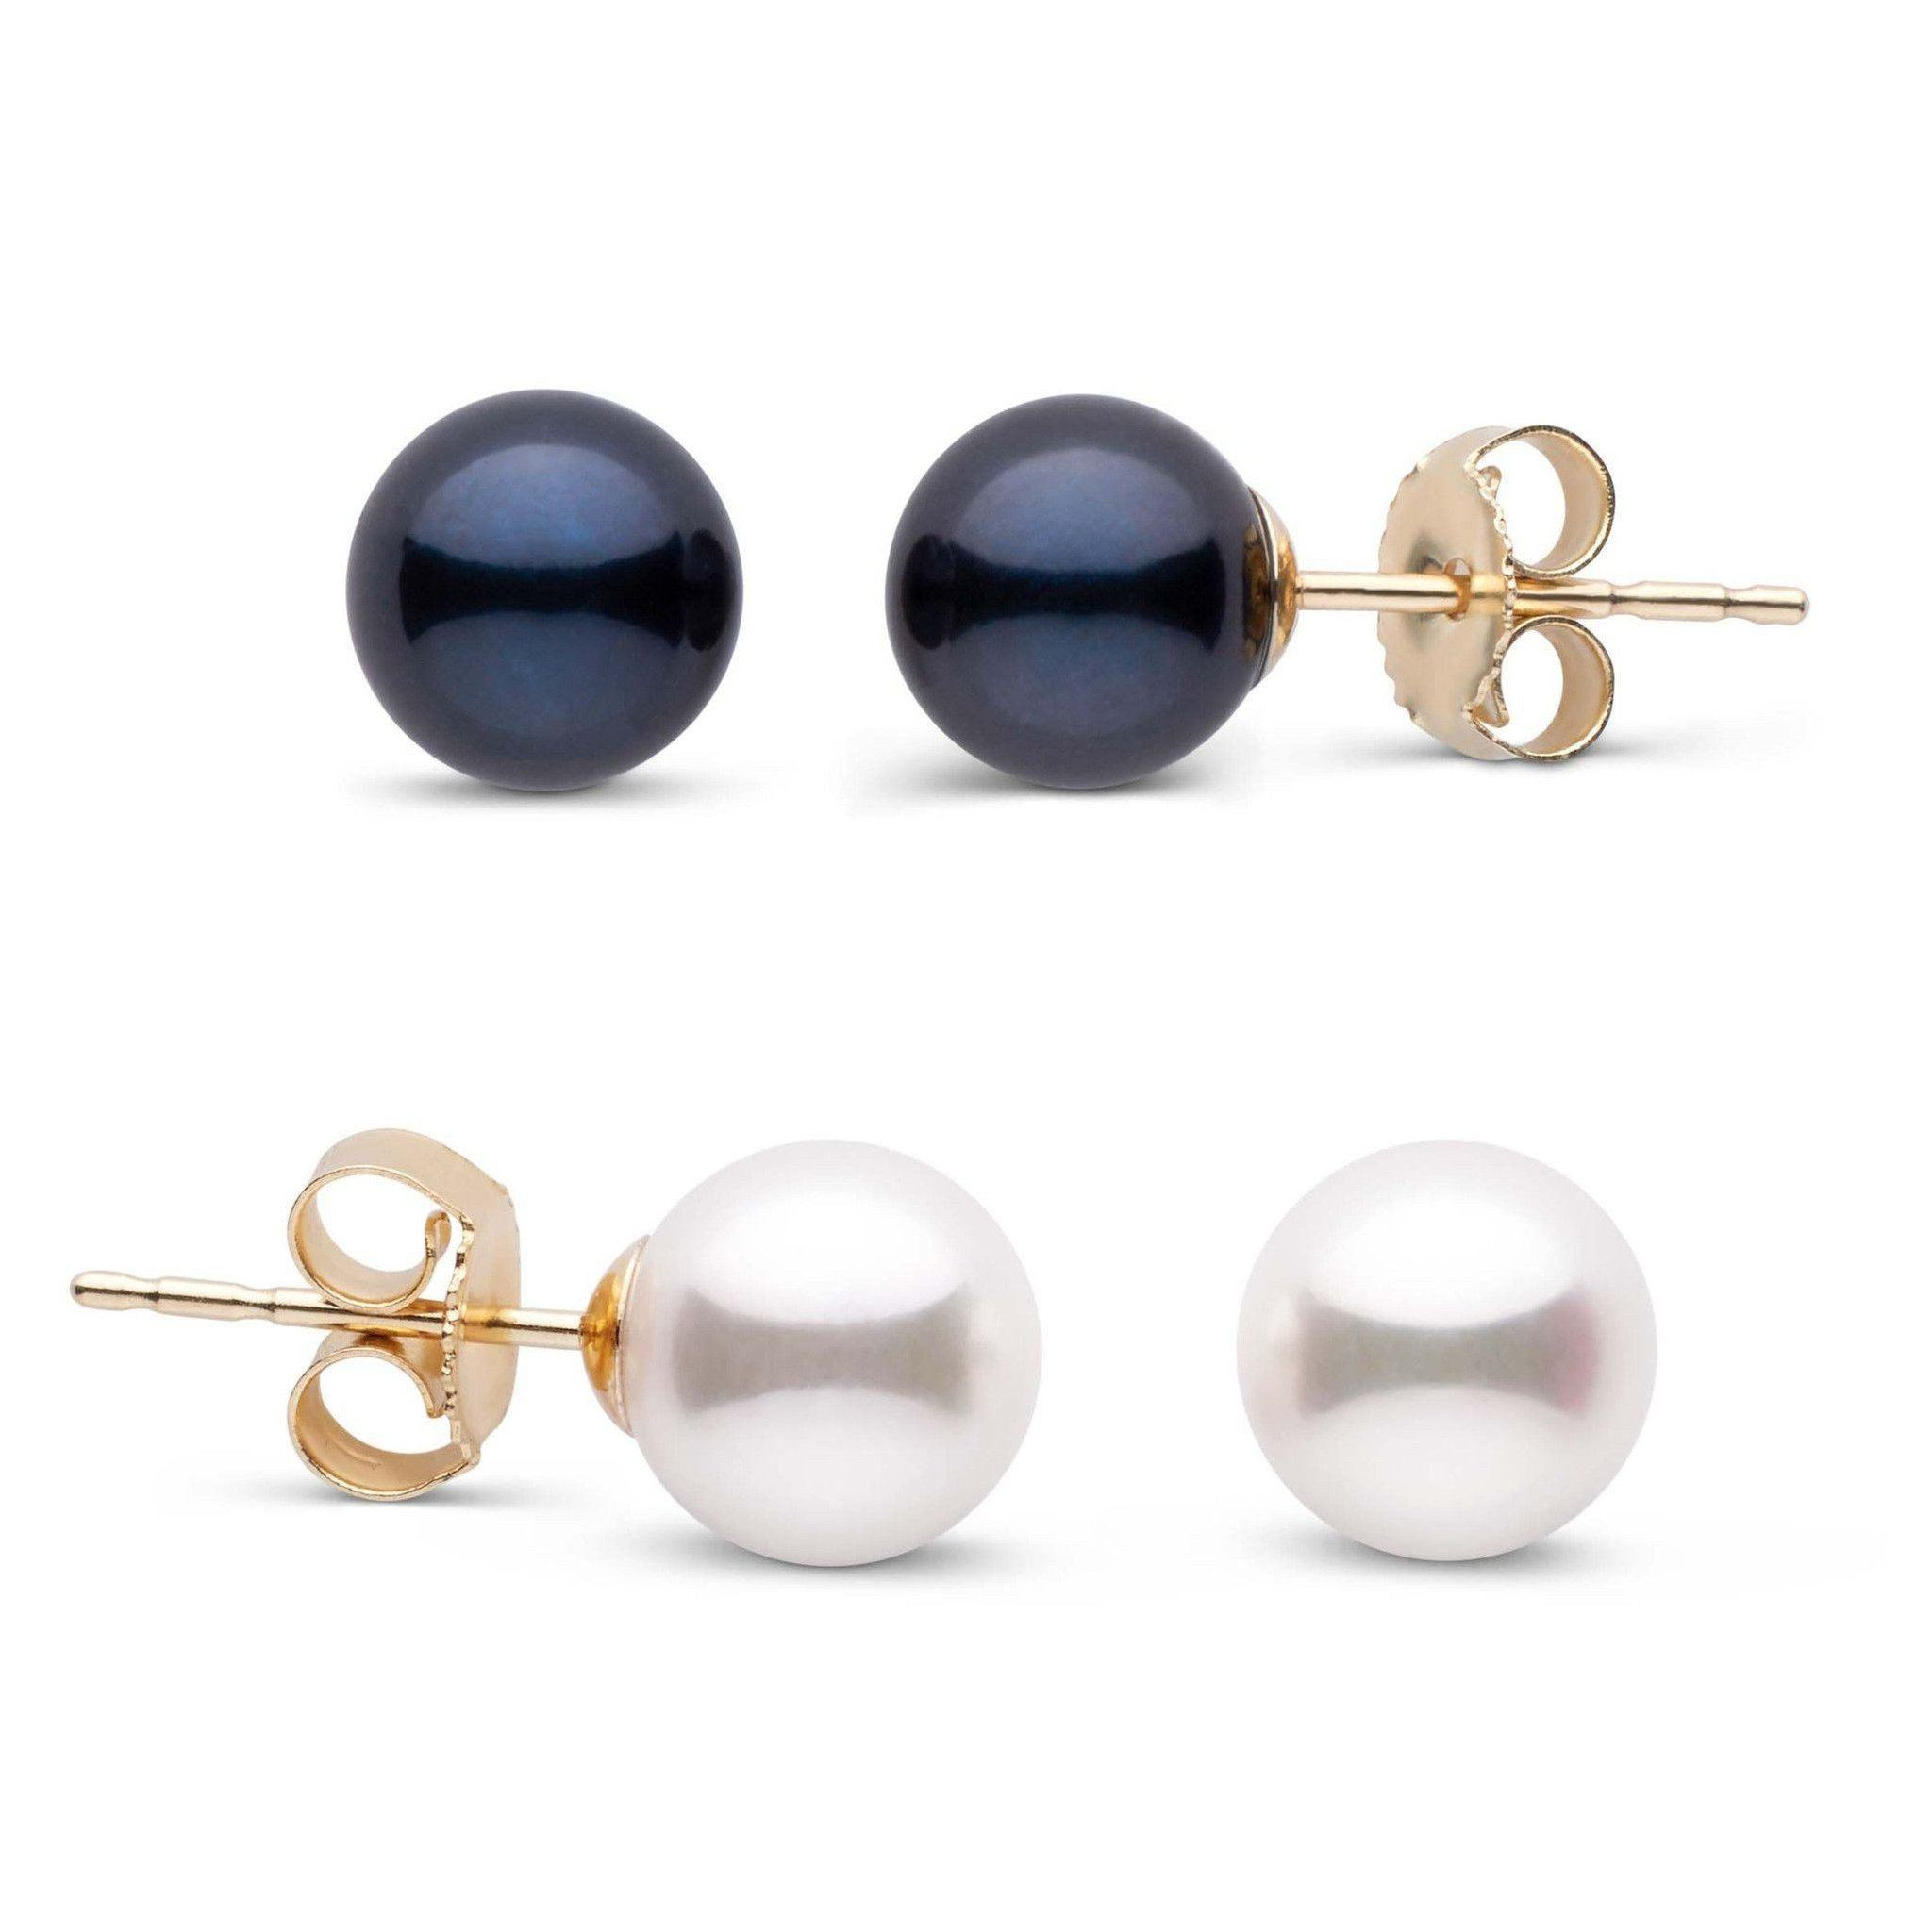 6.0-6.5 mm AA+ Black and White Akoya Pearl Stud Earring Set